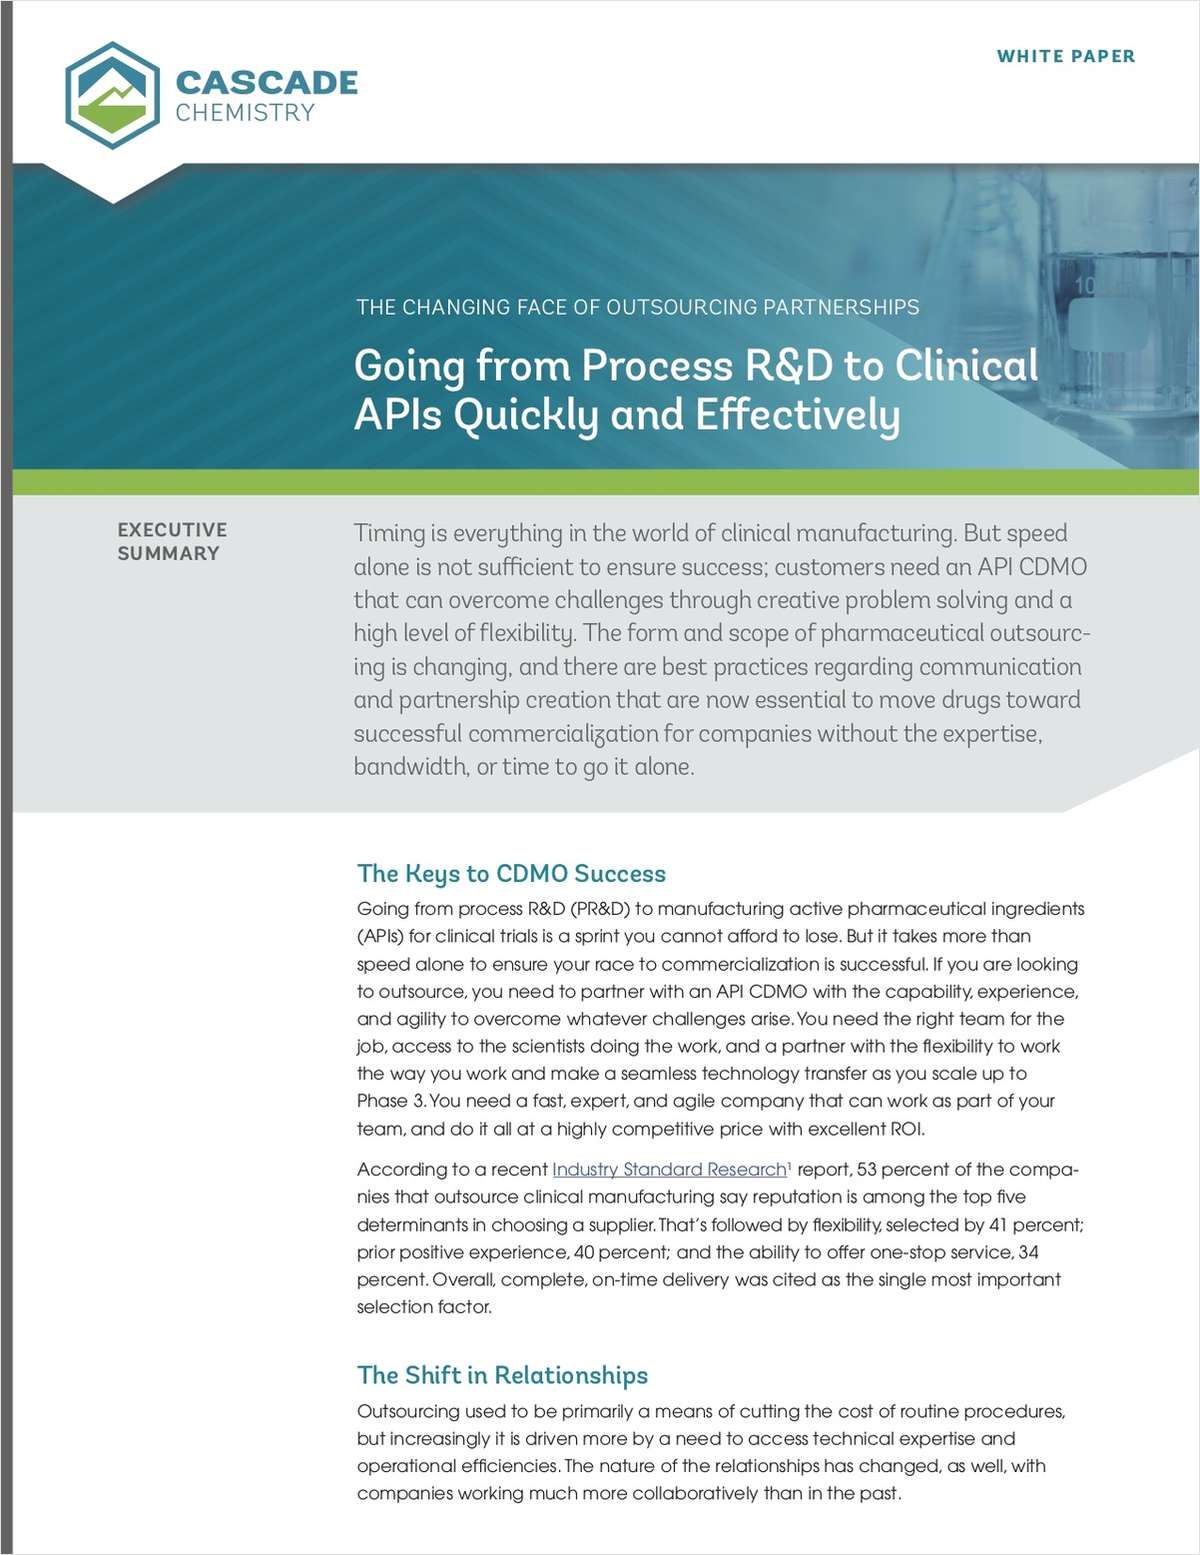 Go from Process R&D to Clinical APIs Quickly and Effectively